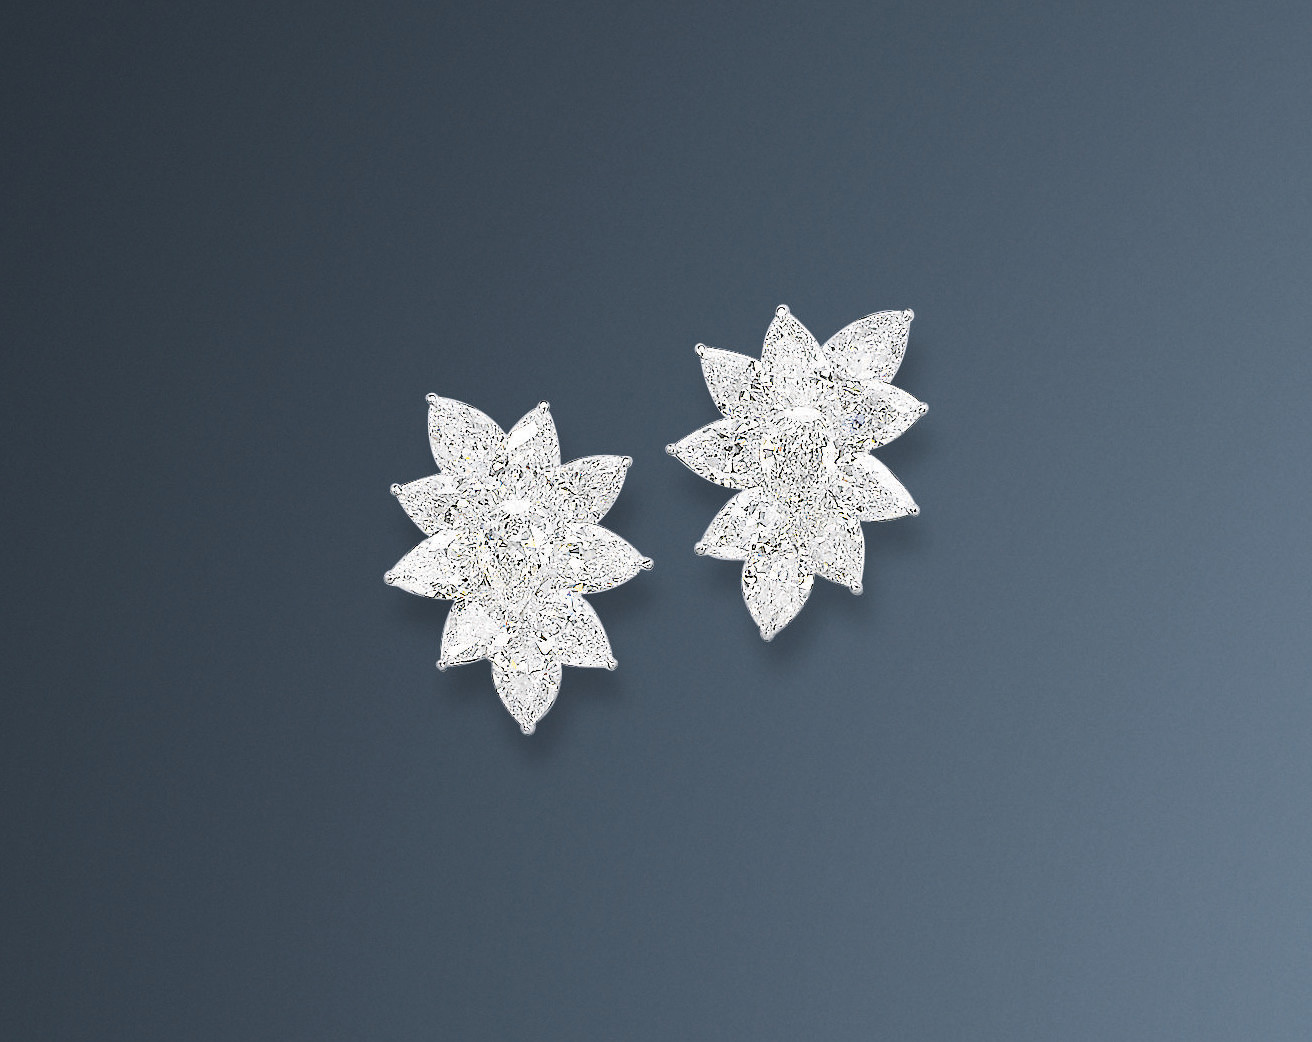 A PAIR OF FINE DIAMOND EAR CLIPS, BY WILLIAM GOLDBERG